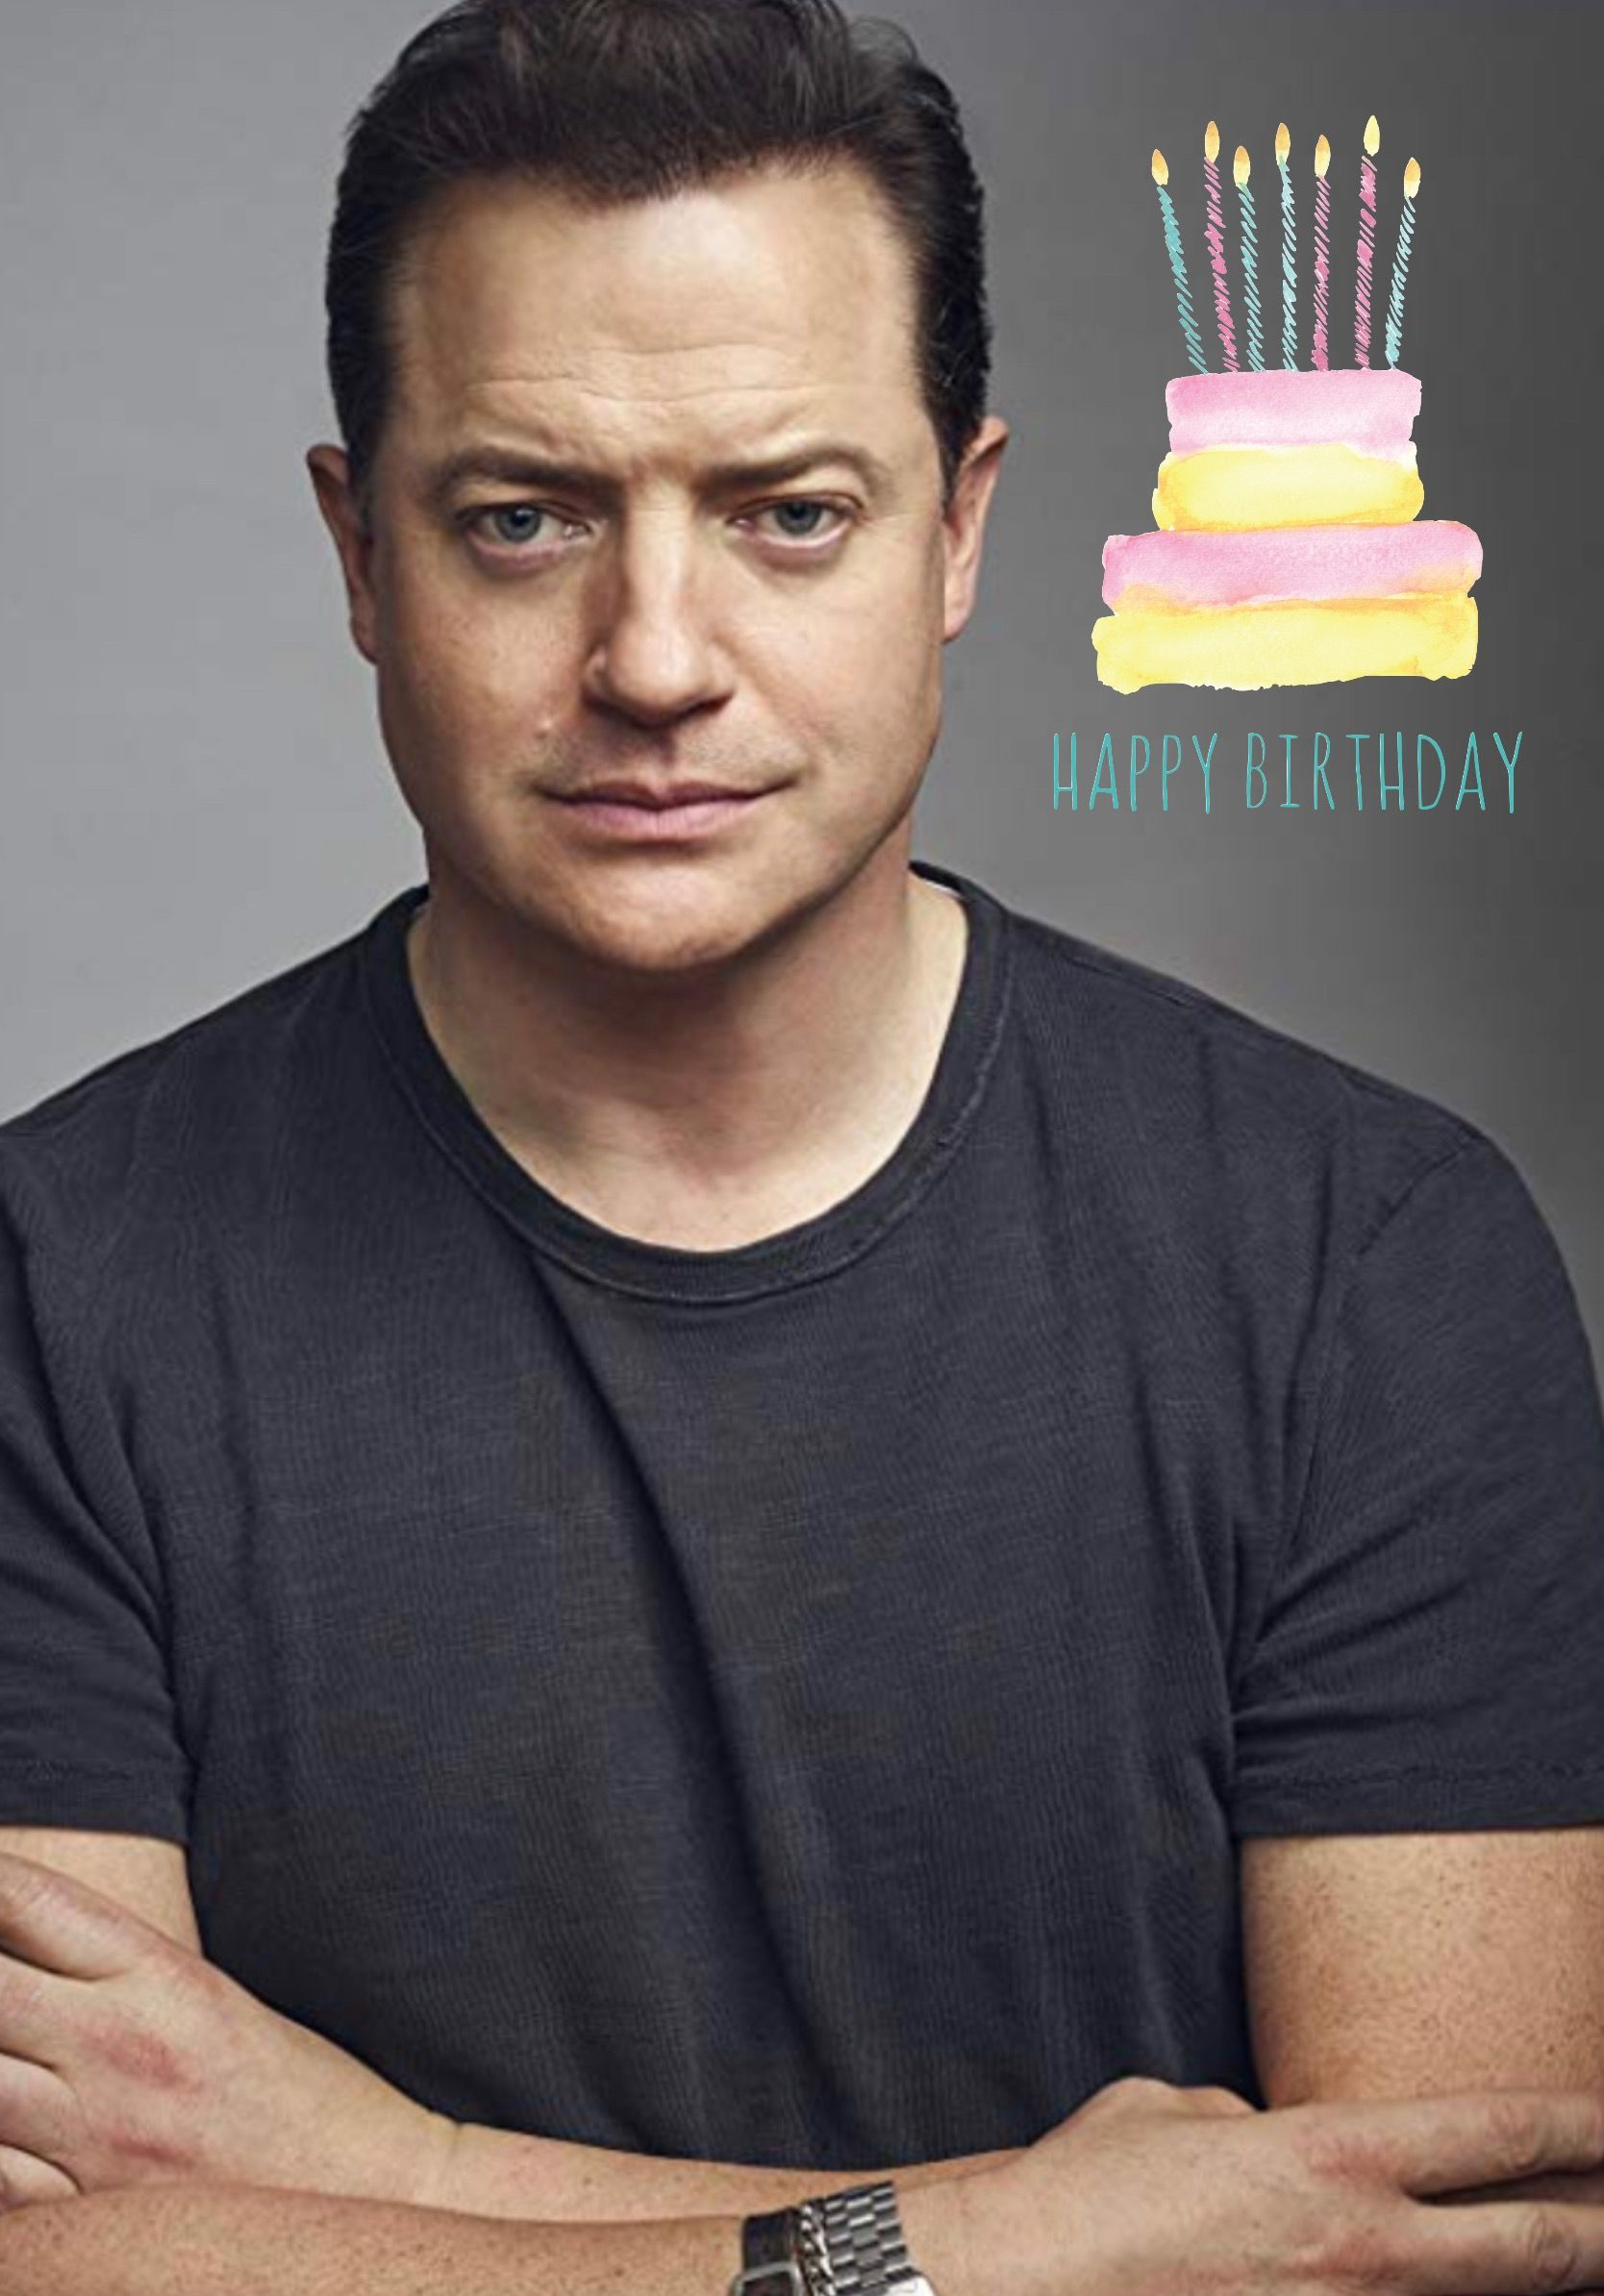 Happy Birthday Brendan Fraser Greeting Card Companies Greeting Card Collection Wholesale Greeting Cards